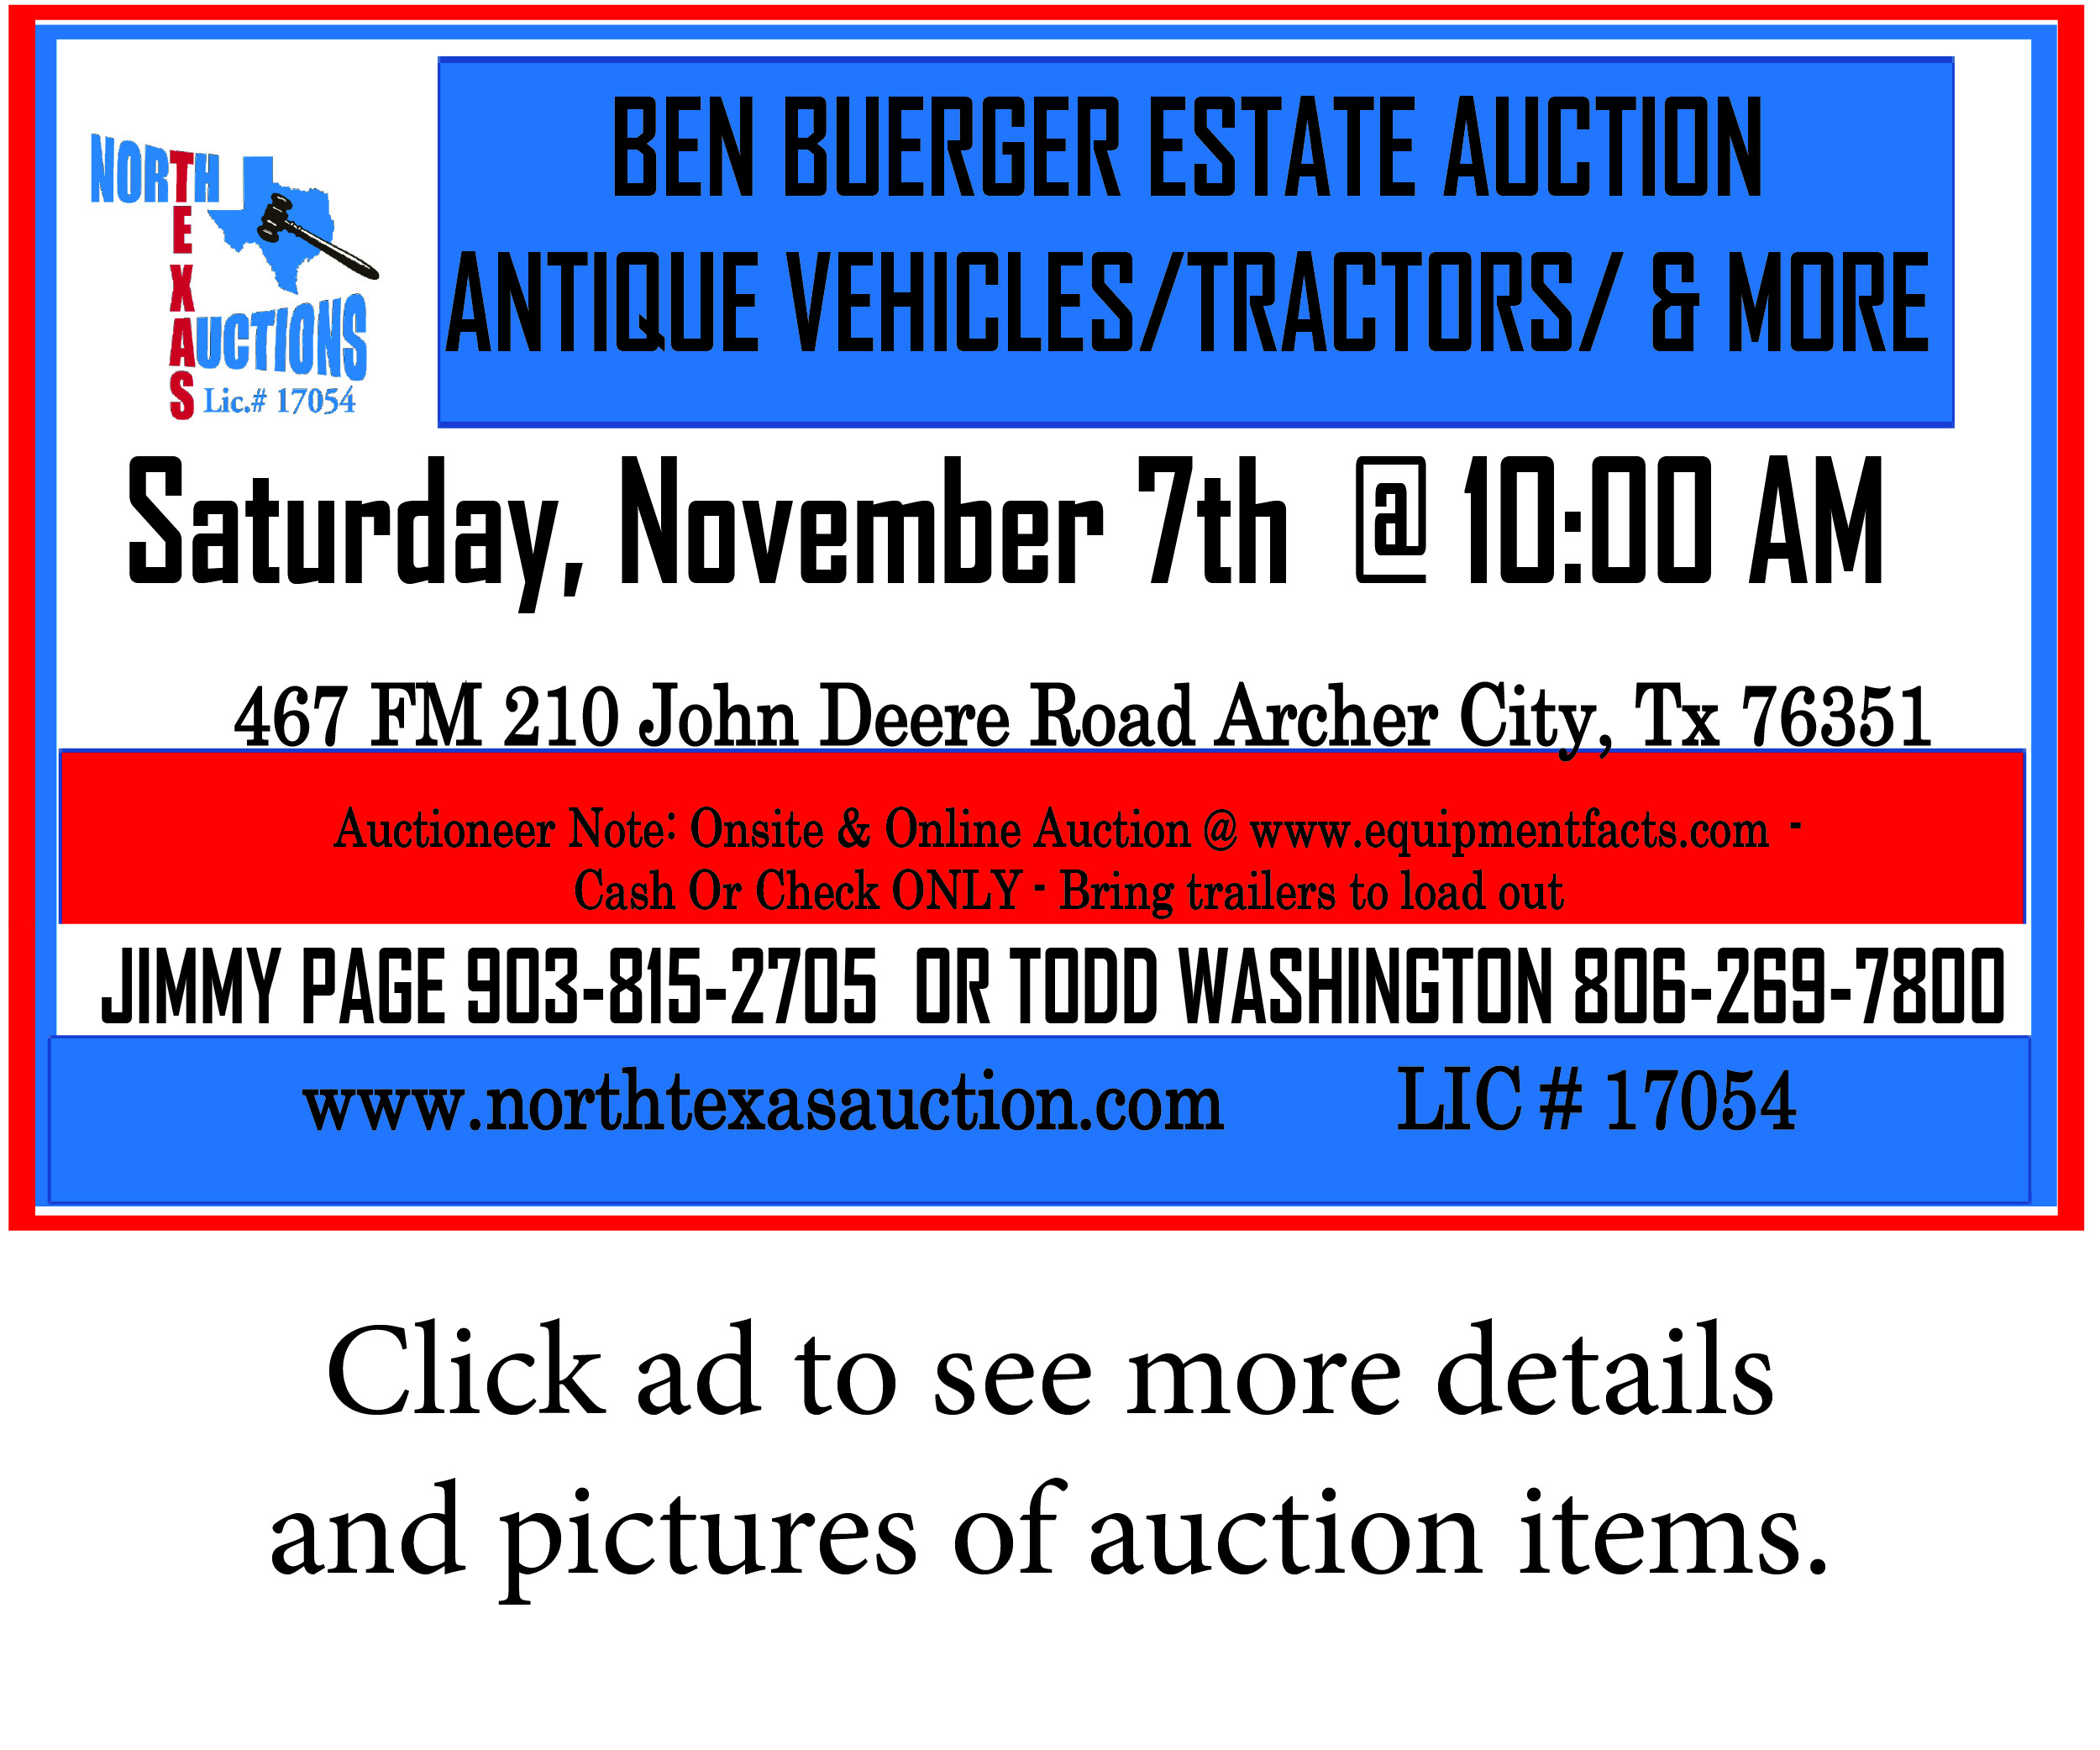 Ben Buerger Estate Auction Advertisement